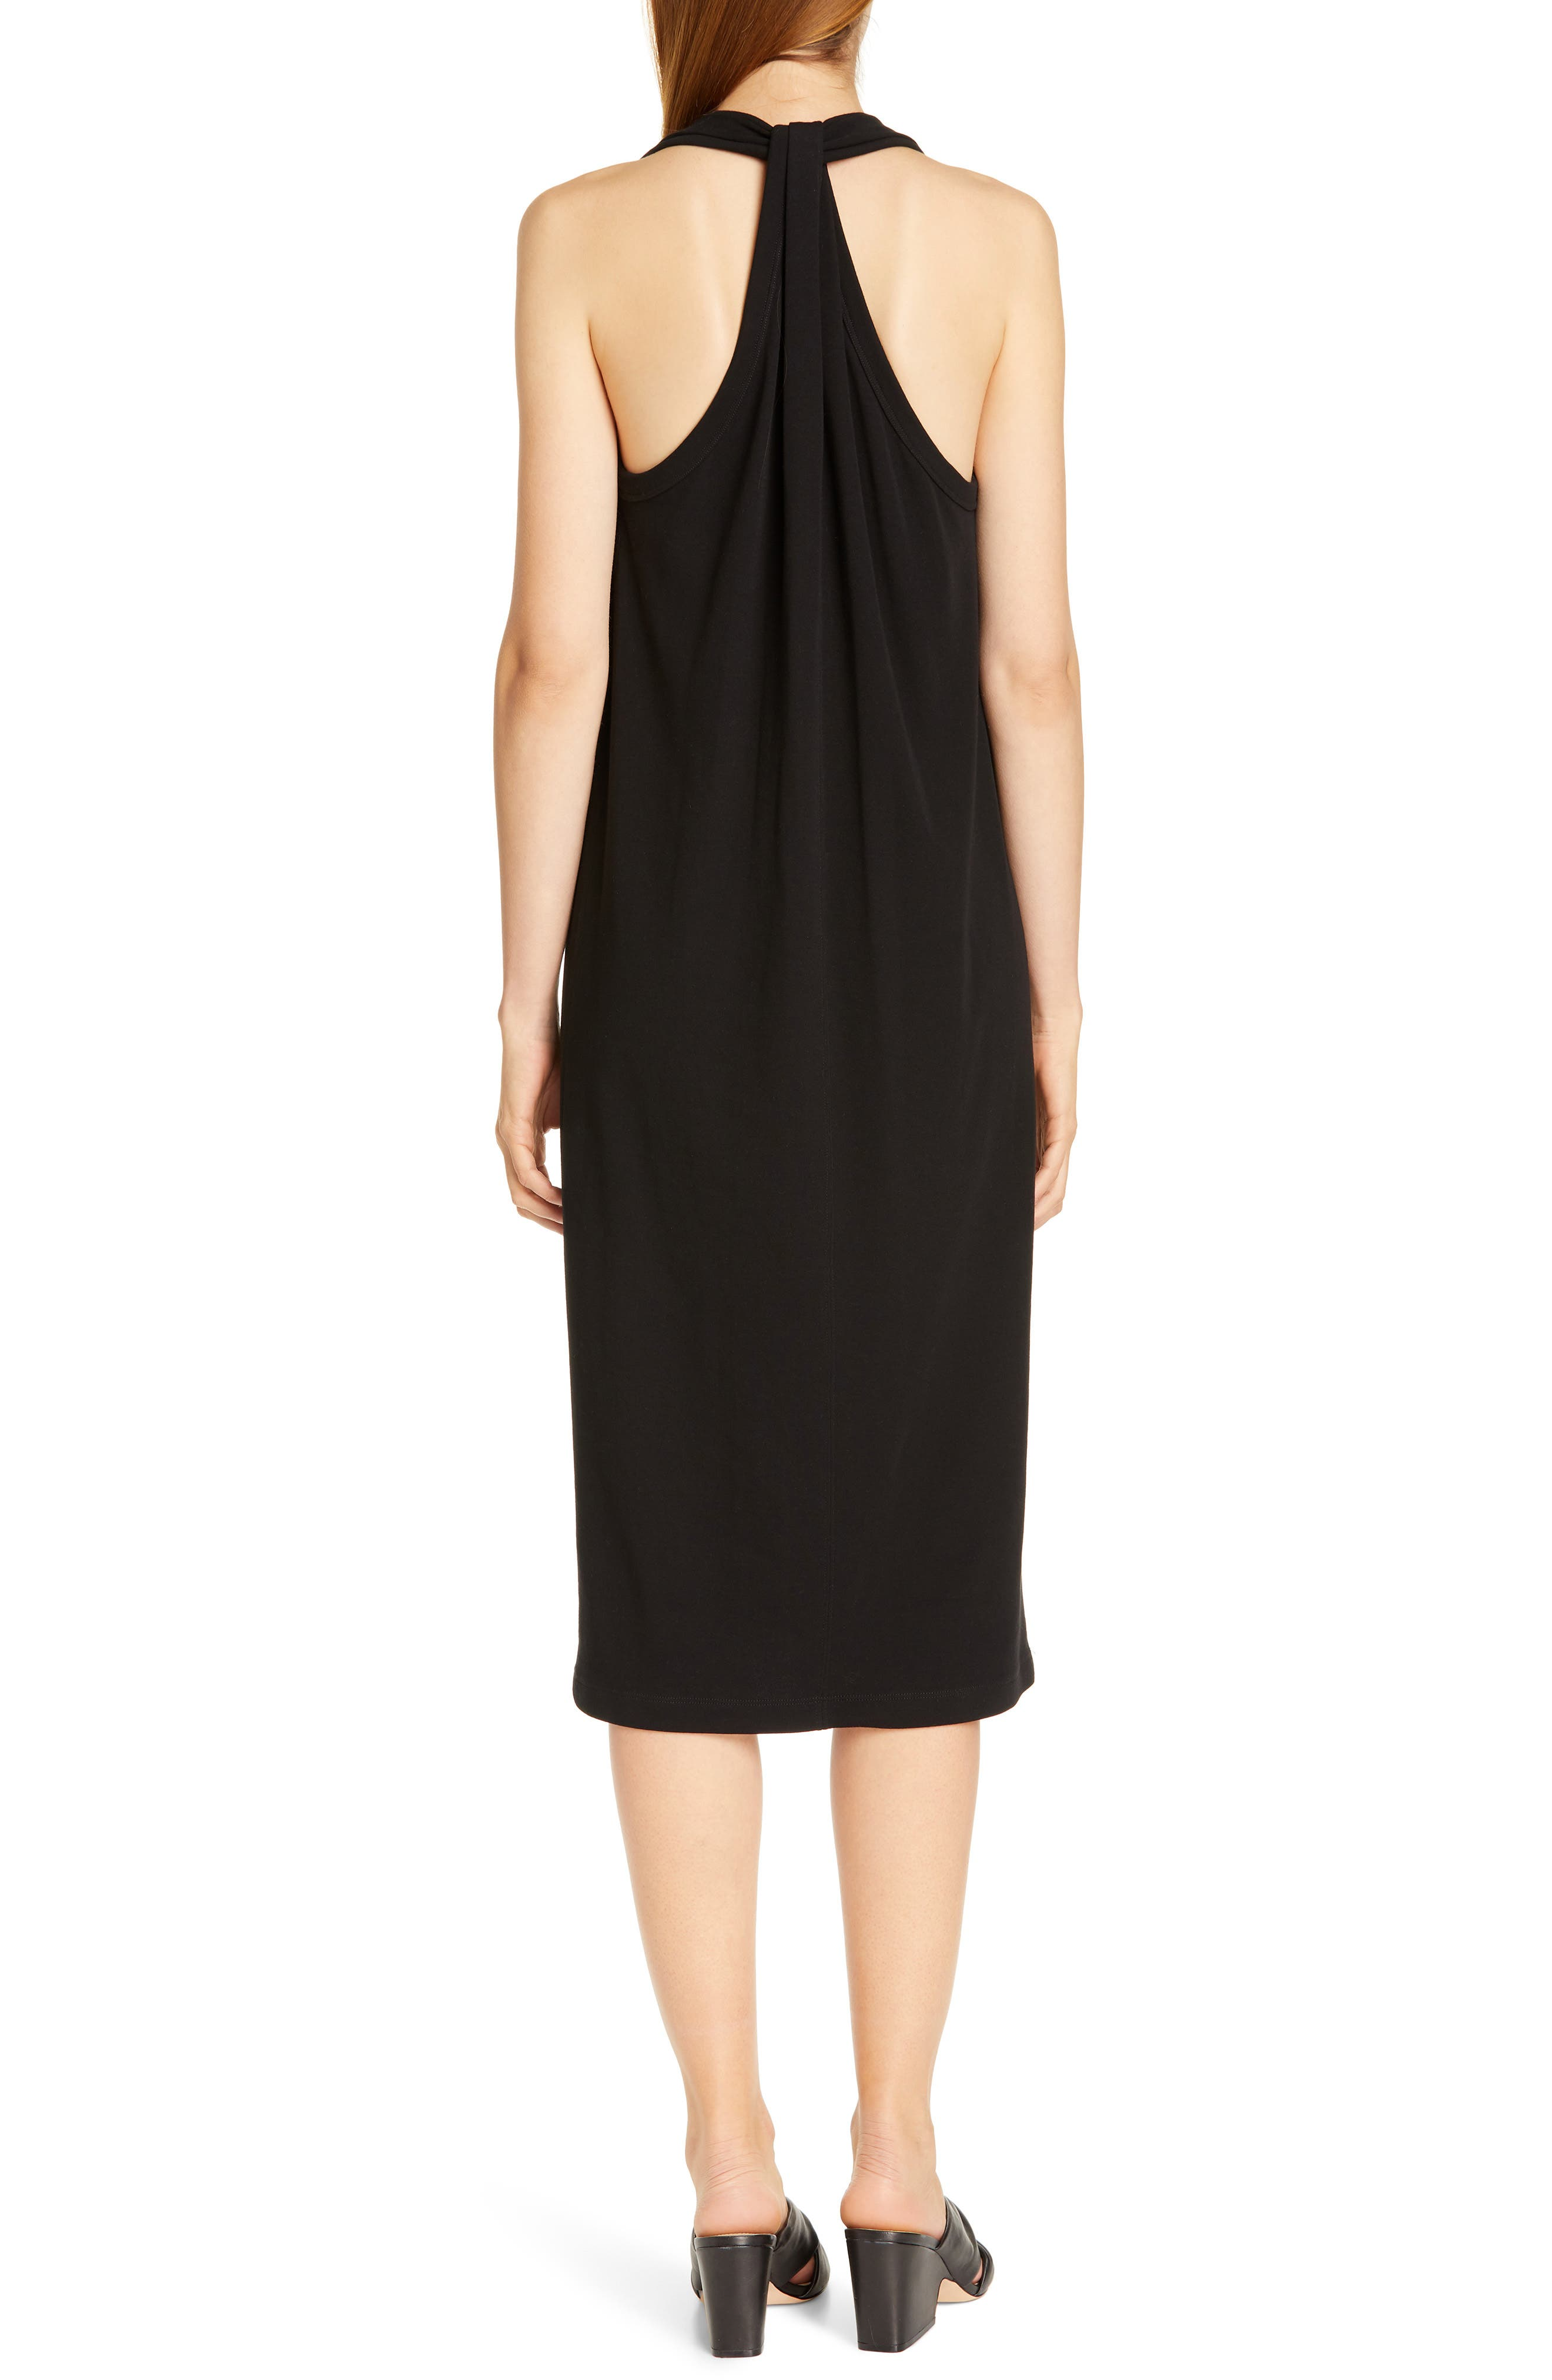 HELMUT LANG, Halter Neck Cotton Jersey Dress, Alternate thumbnail 2, color, BLACK